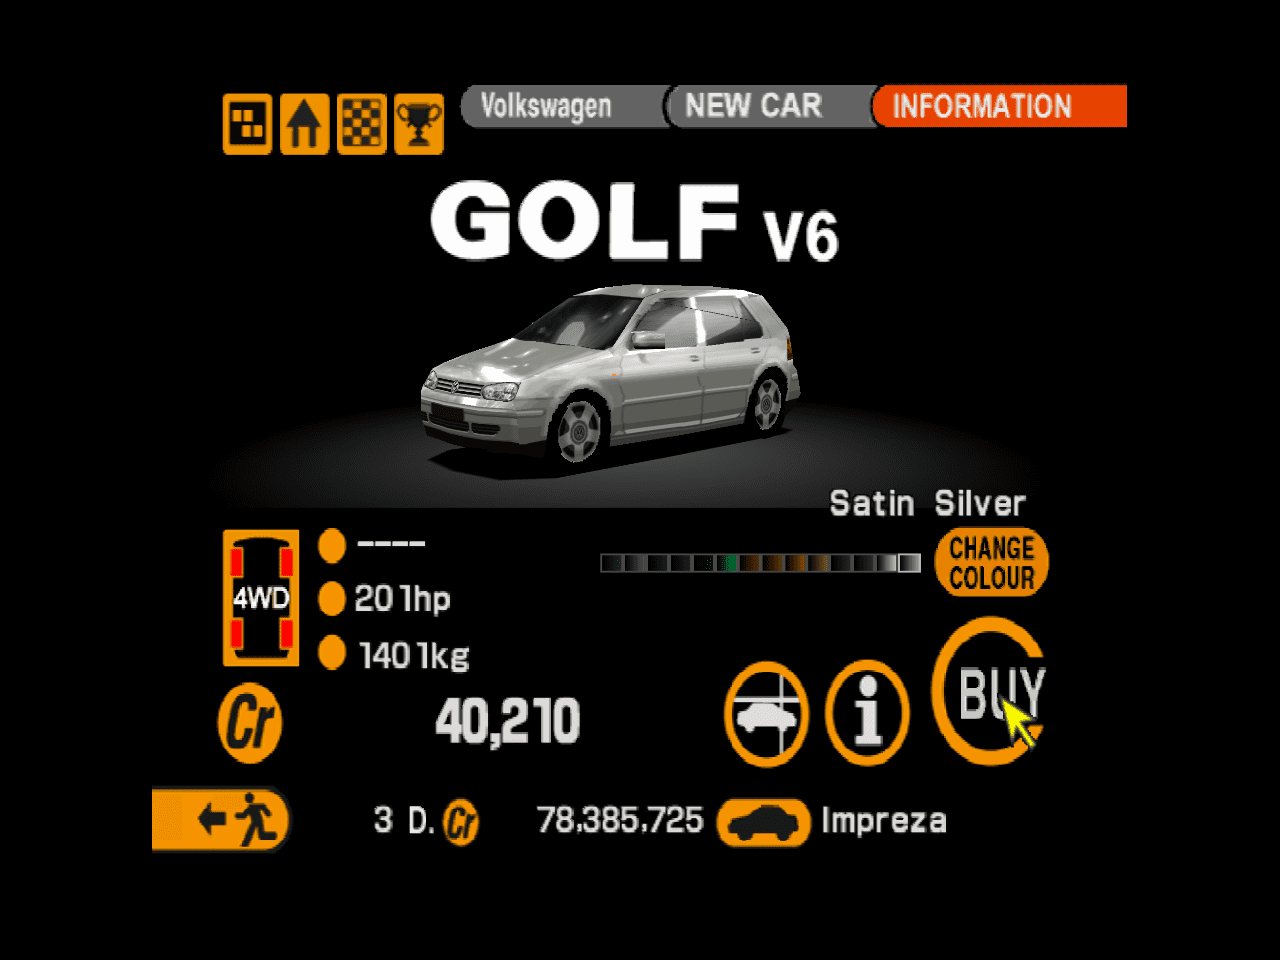 Mod] Gran Turismo 2 plus (bug fixes, restored content and new